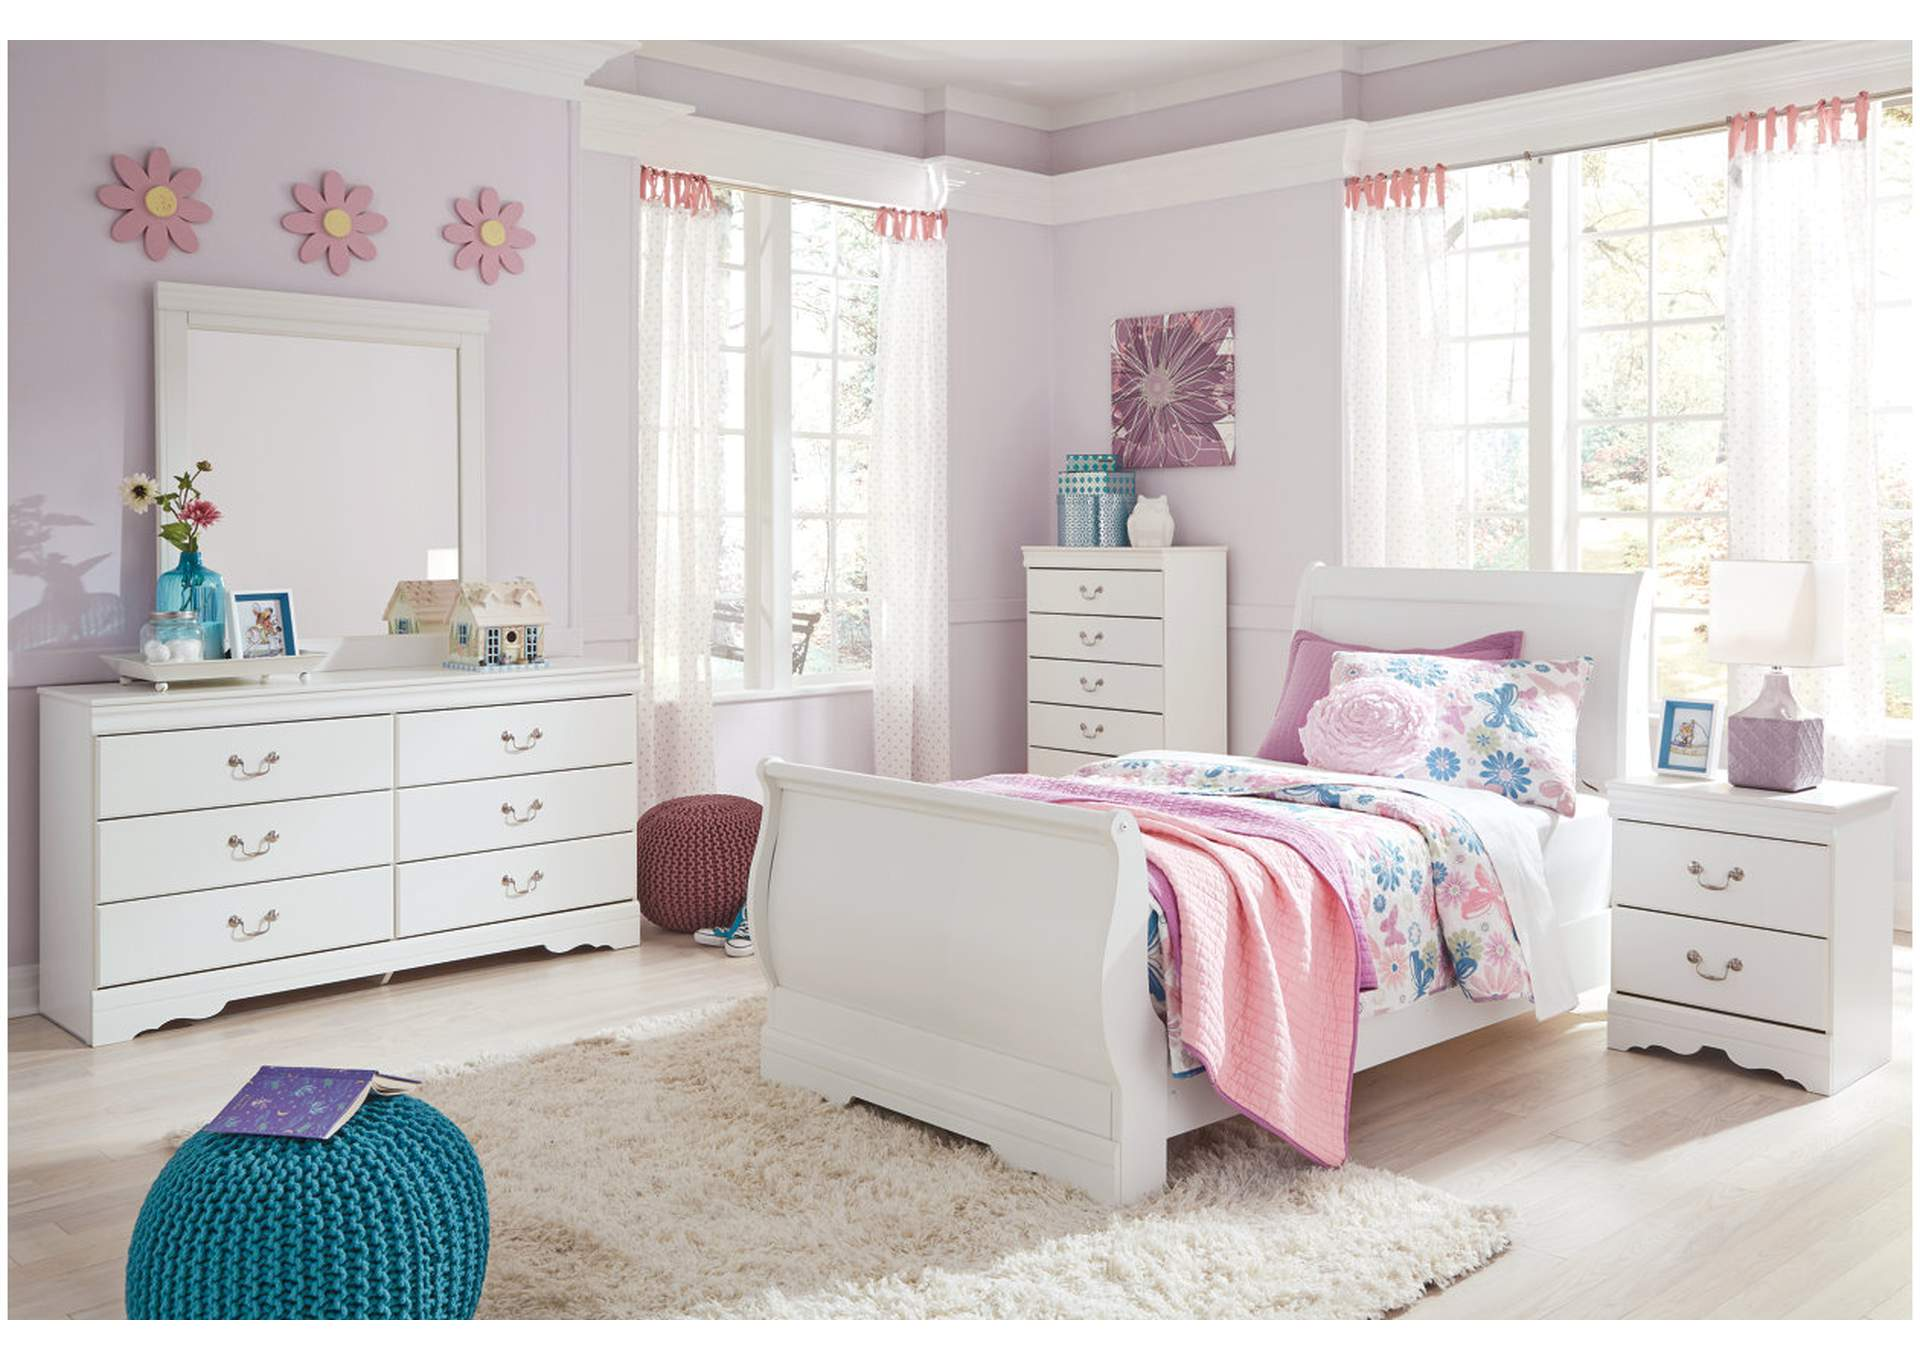 Anarasia White Twin Sleigh Bed w/Dresser, Mirror & Nightstand,Signature Design By Ashley